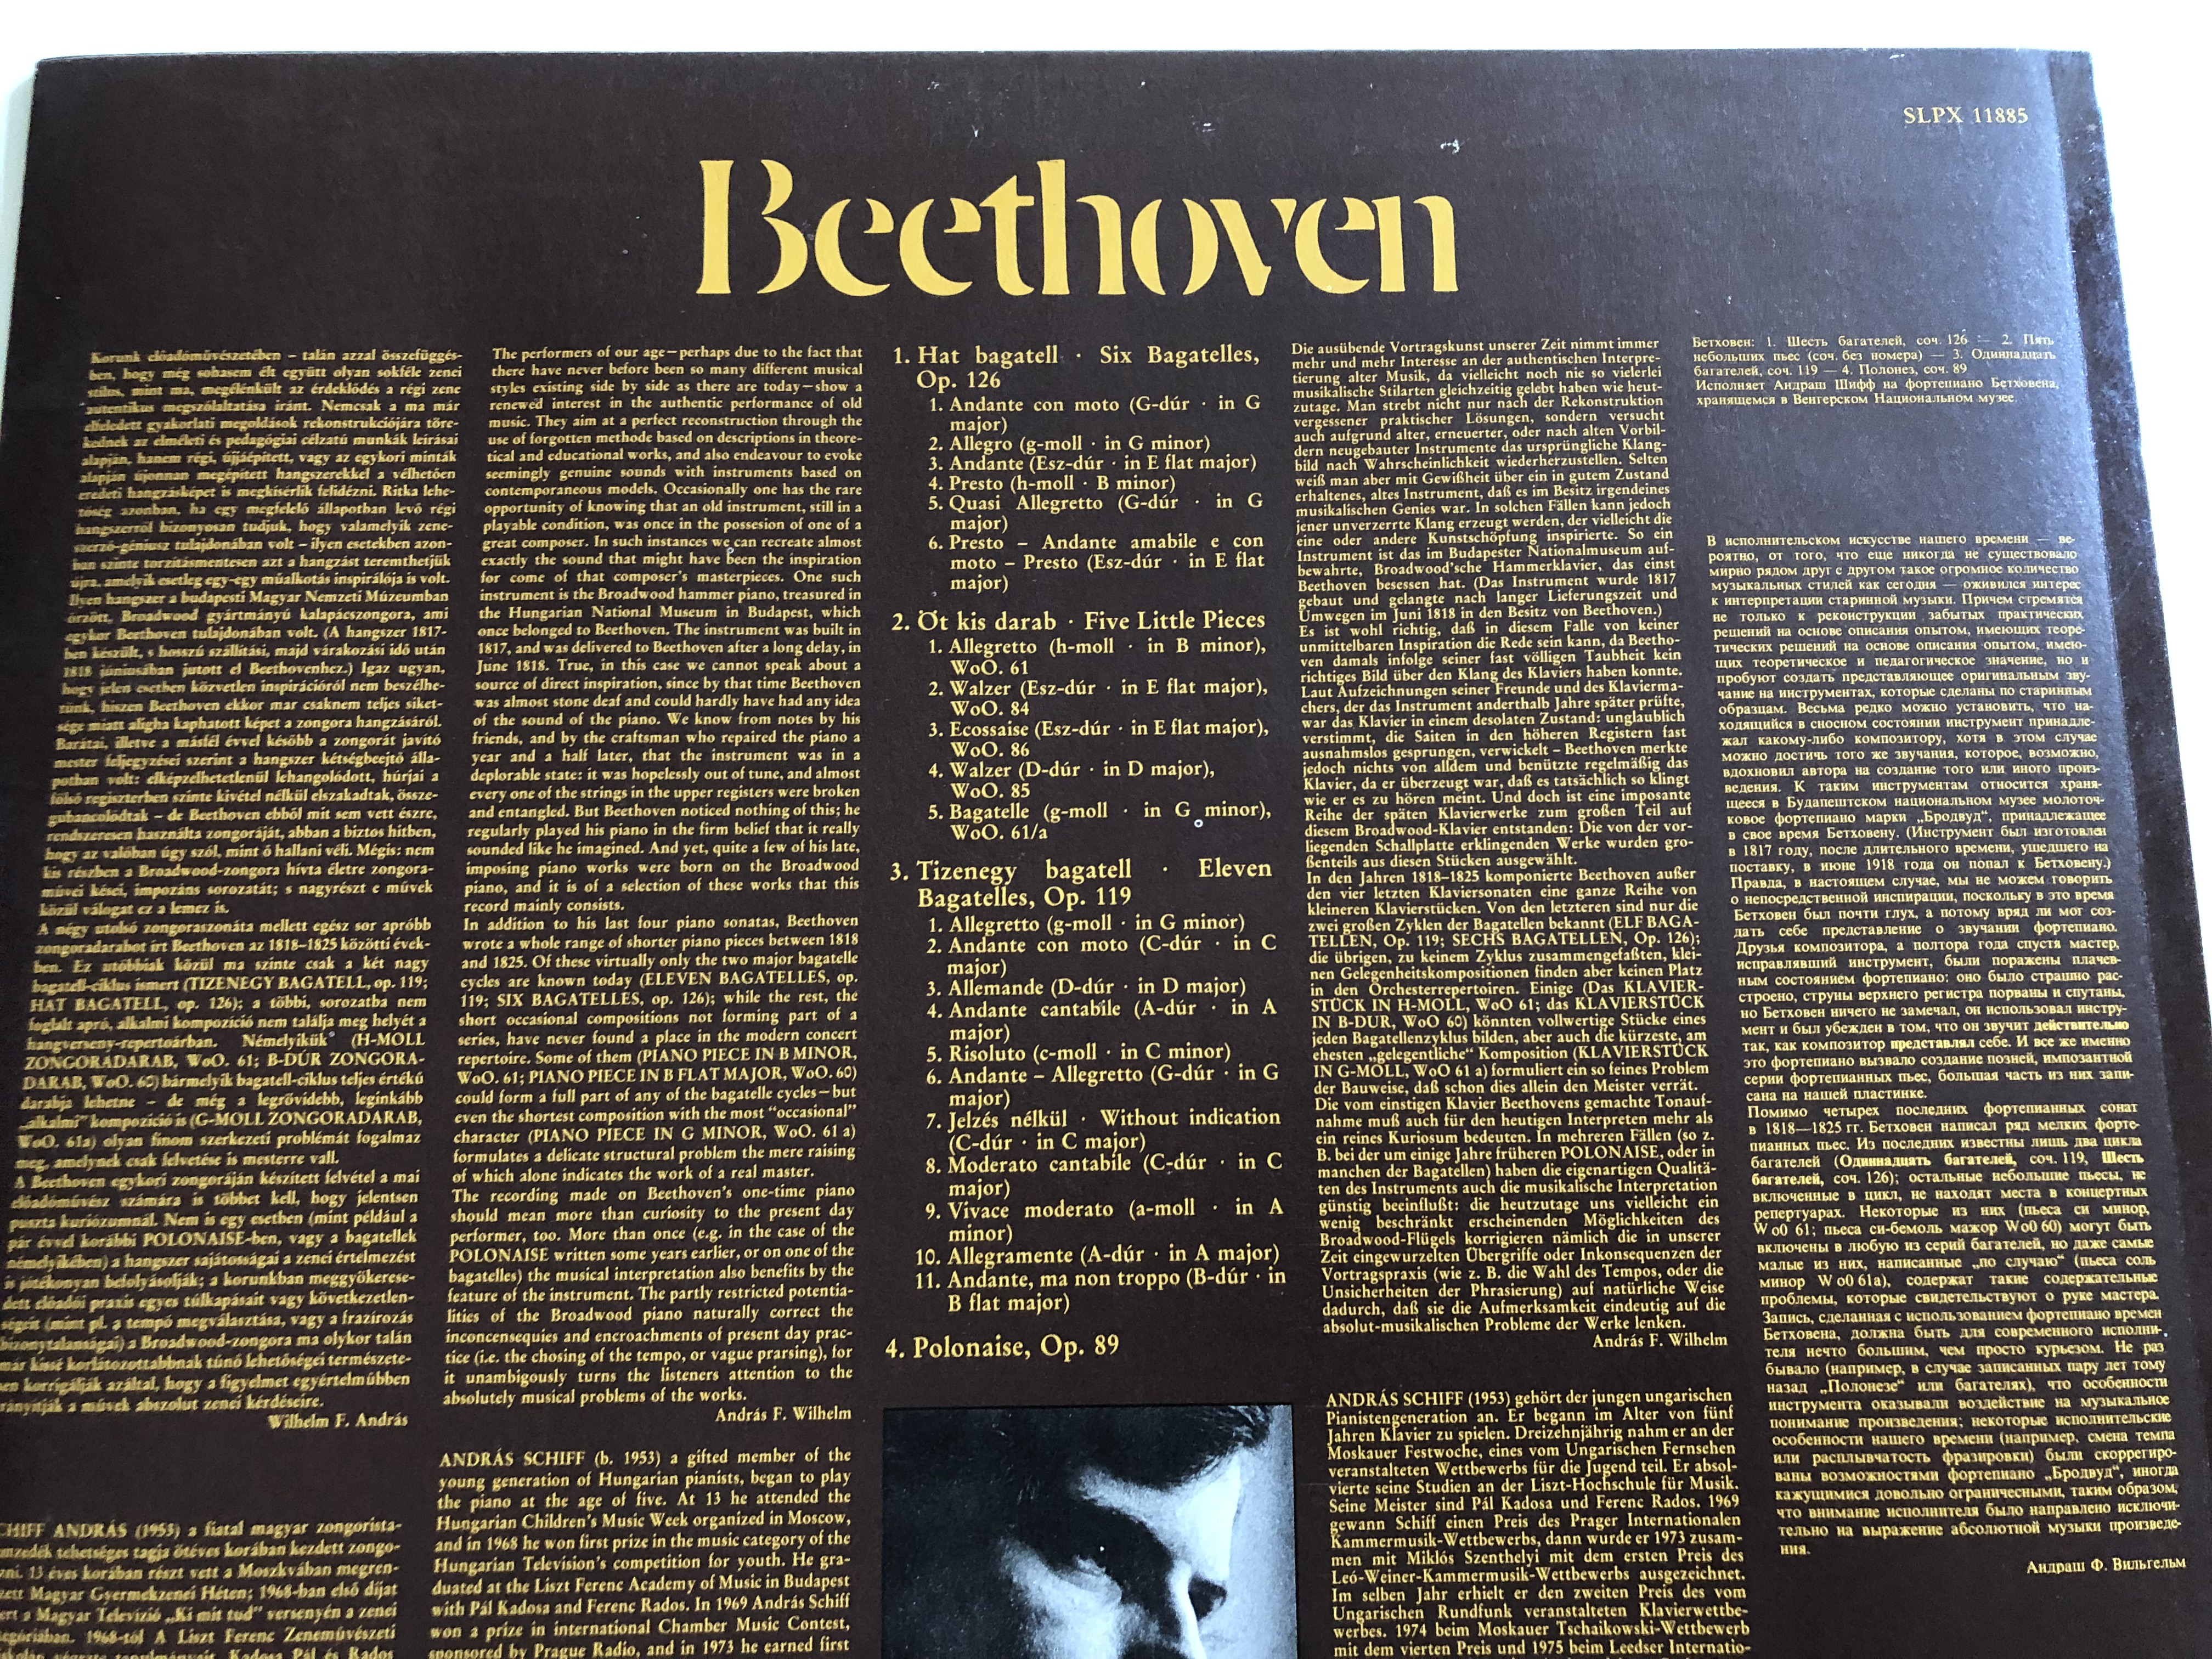 beethoven-bagatelles-op.-119-126-five-little-pieces-woo-polonaise-op.-89-andr-s-schiff-on-beethoven-s-piano-hungaroton-lp-stereo-mono-slpx-11885-3-.jpg